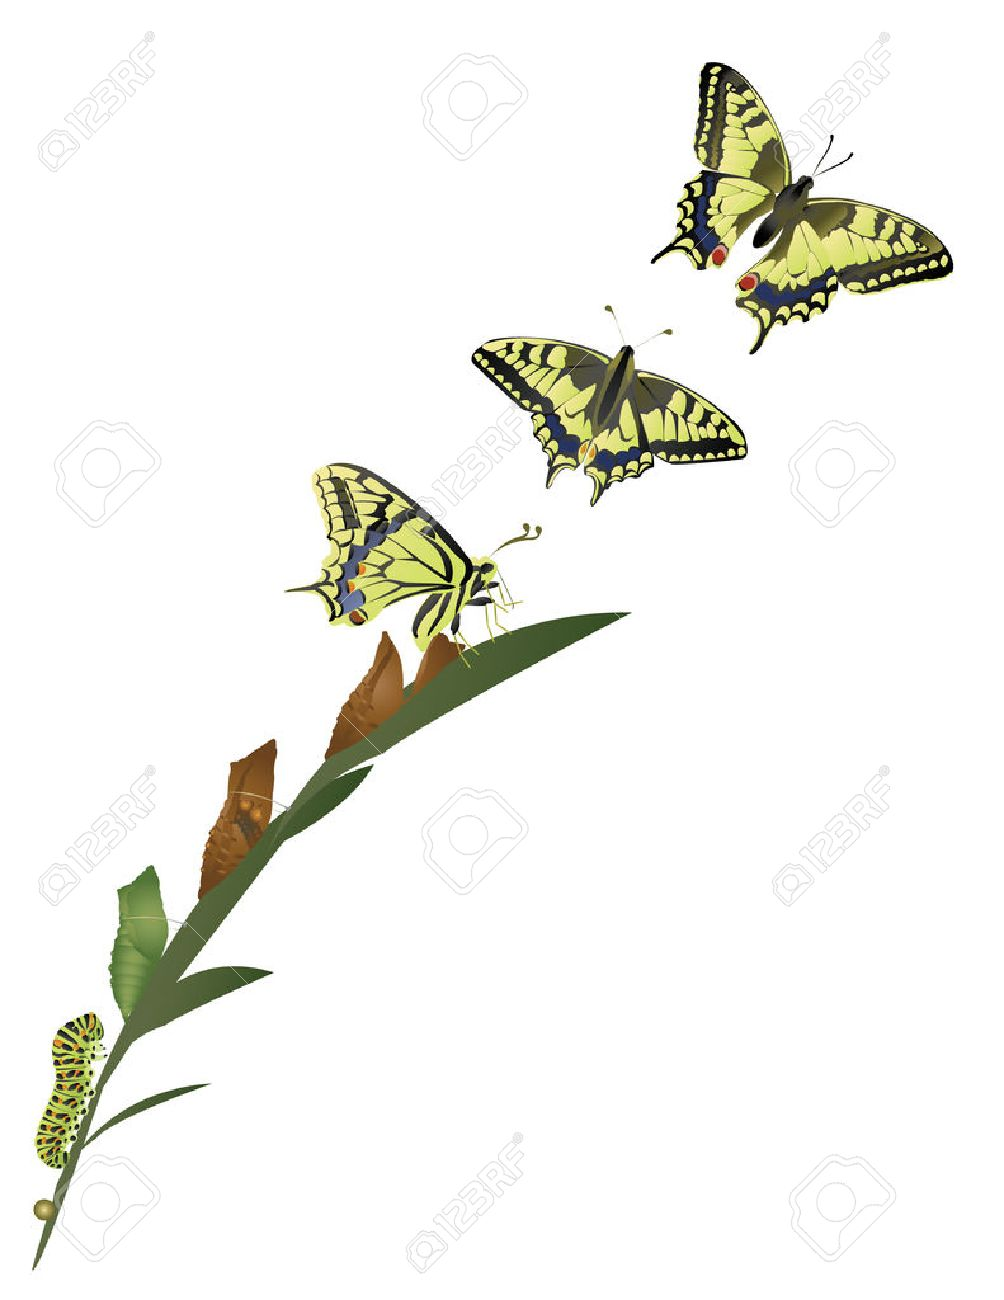 115 butterfly life cycle cliparts stock vector and royalty free butterfly life cycle life cycle of butterfly robcynllc Gallery